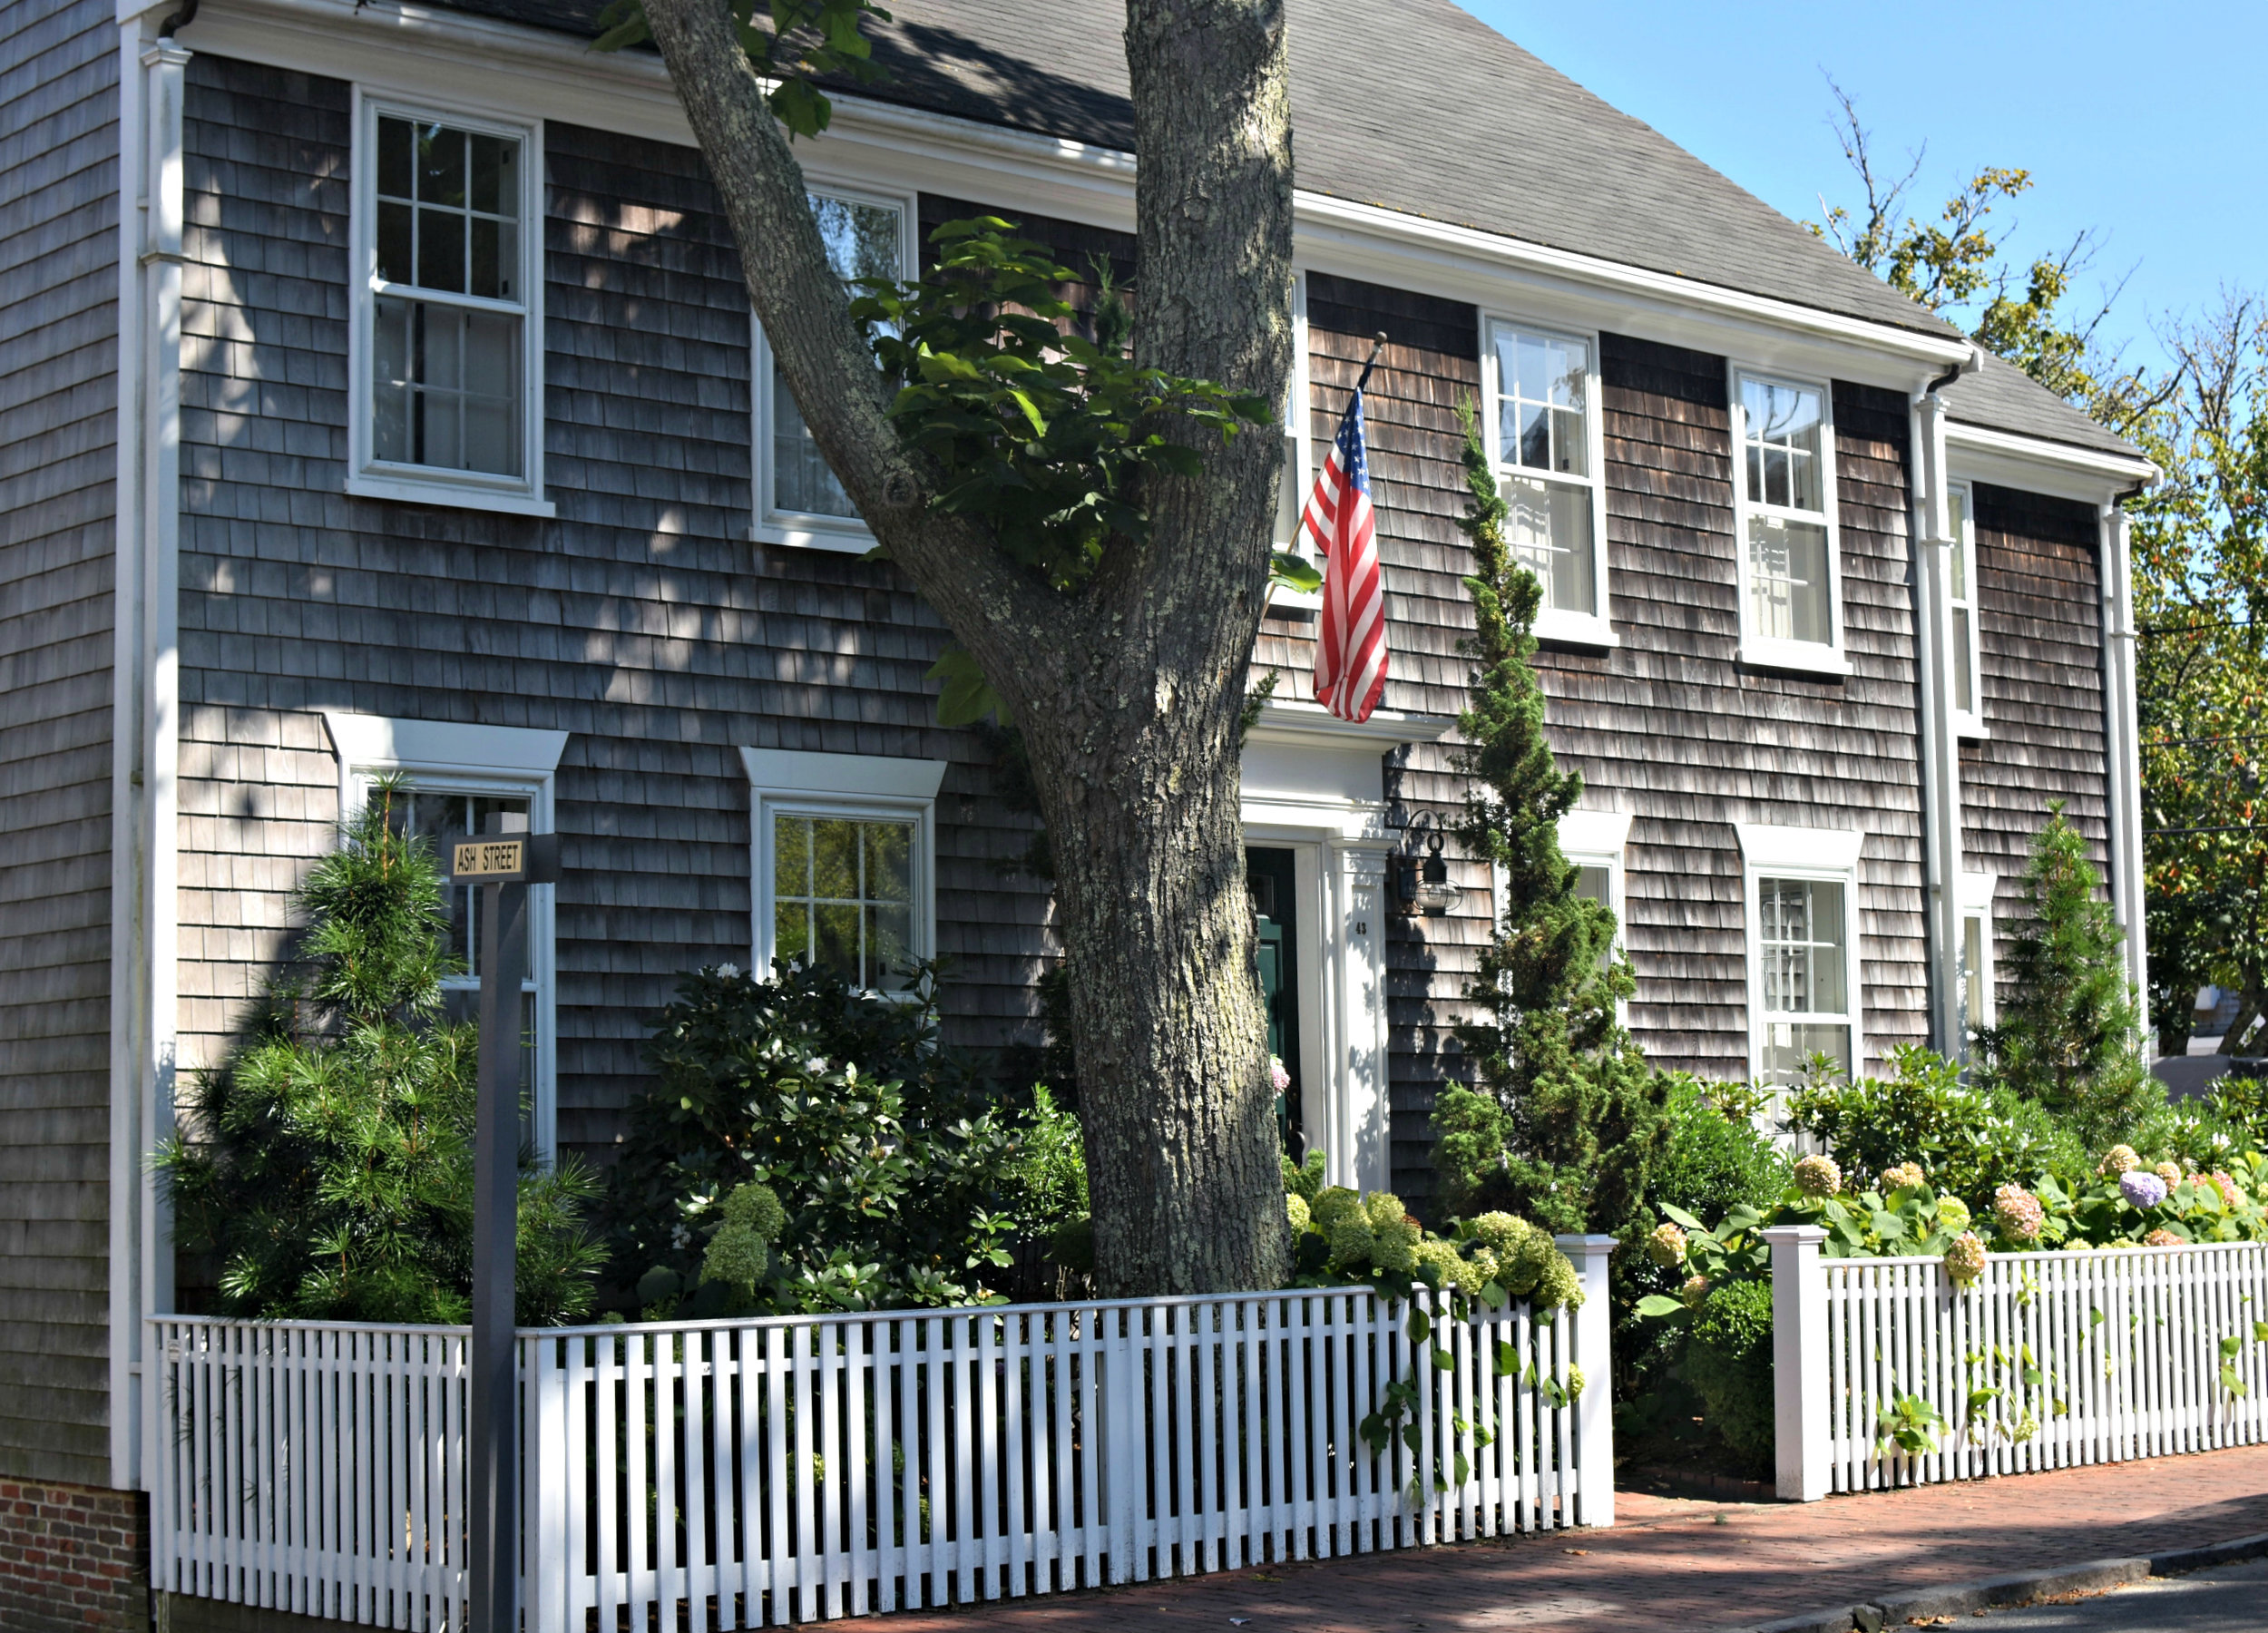 Most island homes are covered in unpainted cedar shingles, which lose their golden color and weather to a silvery gray after their first Nantucket winter.